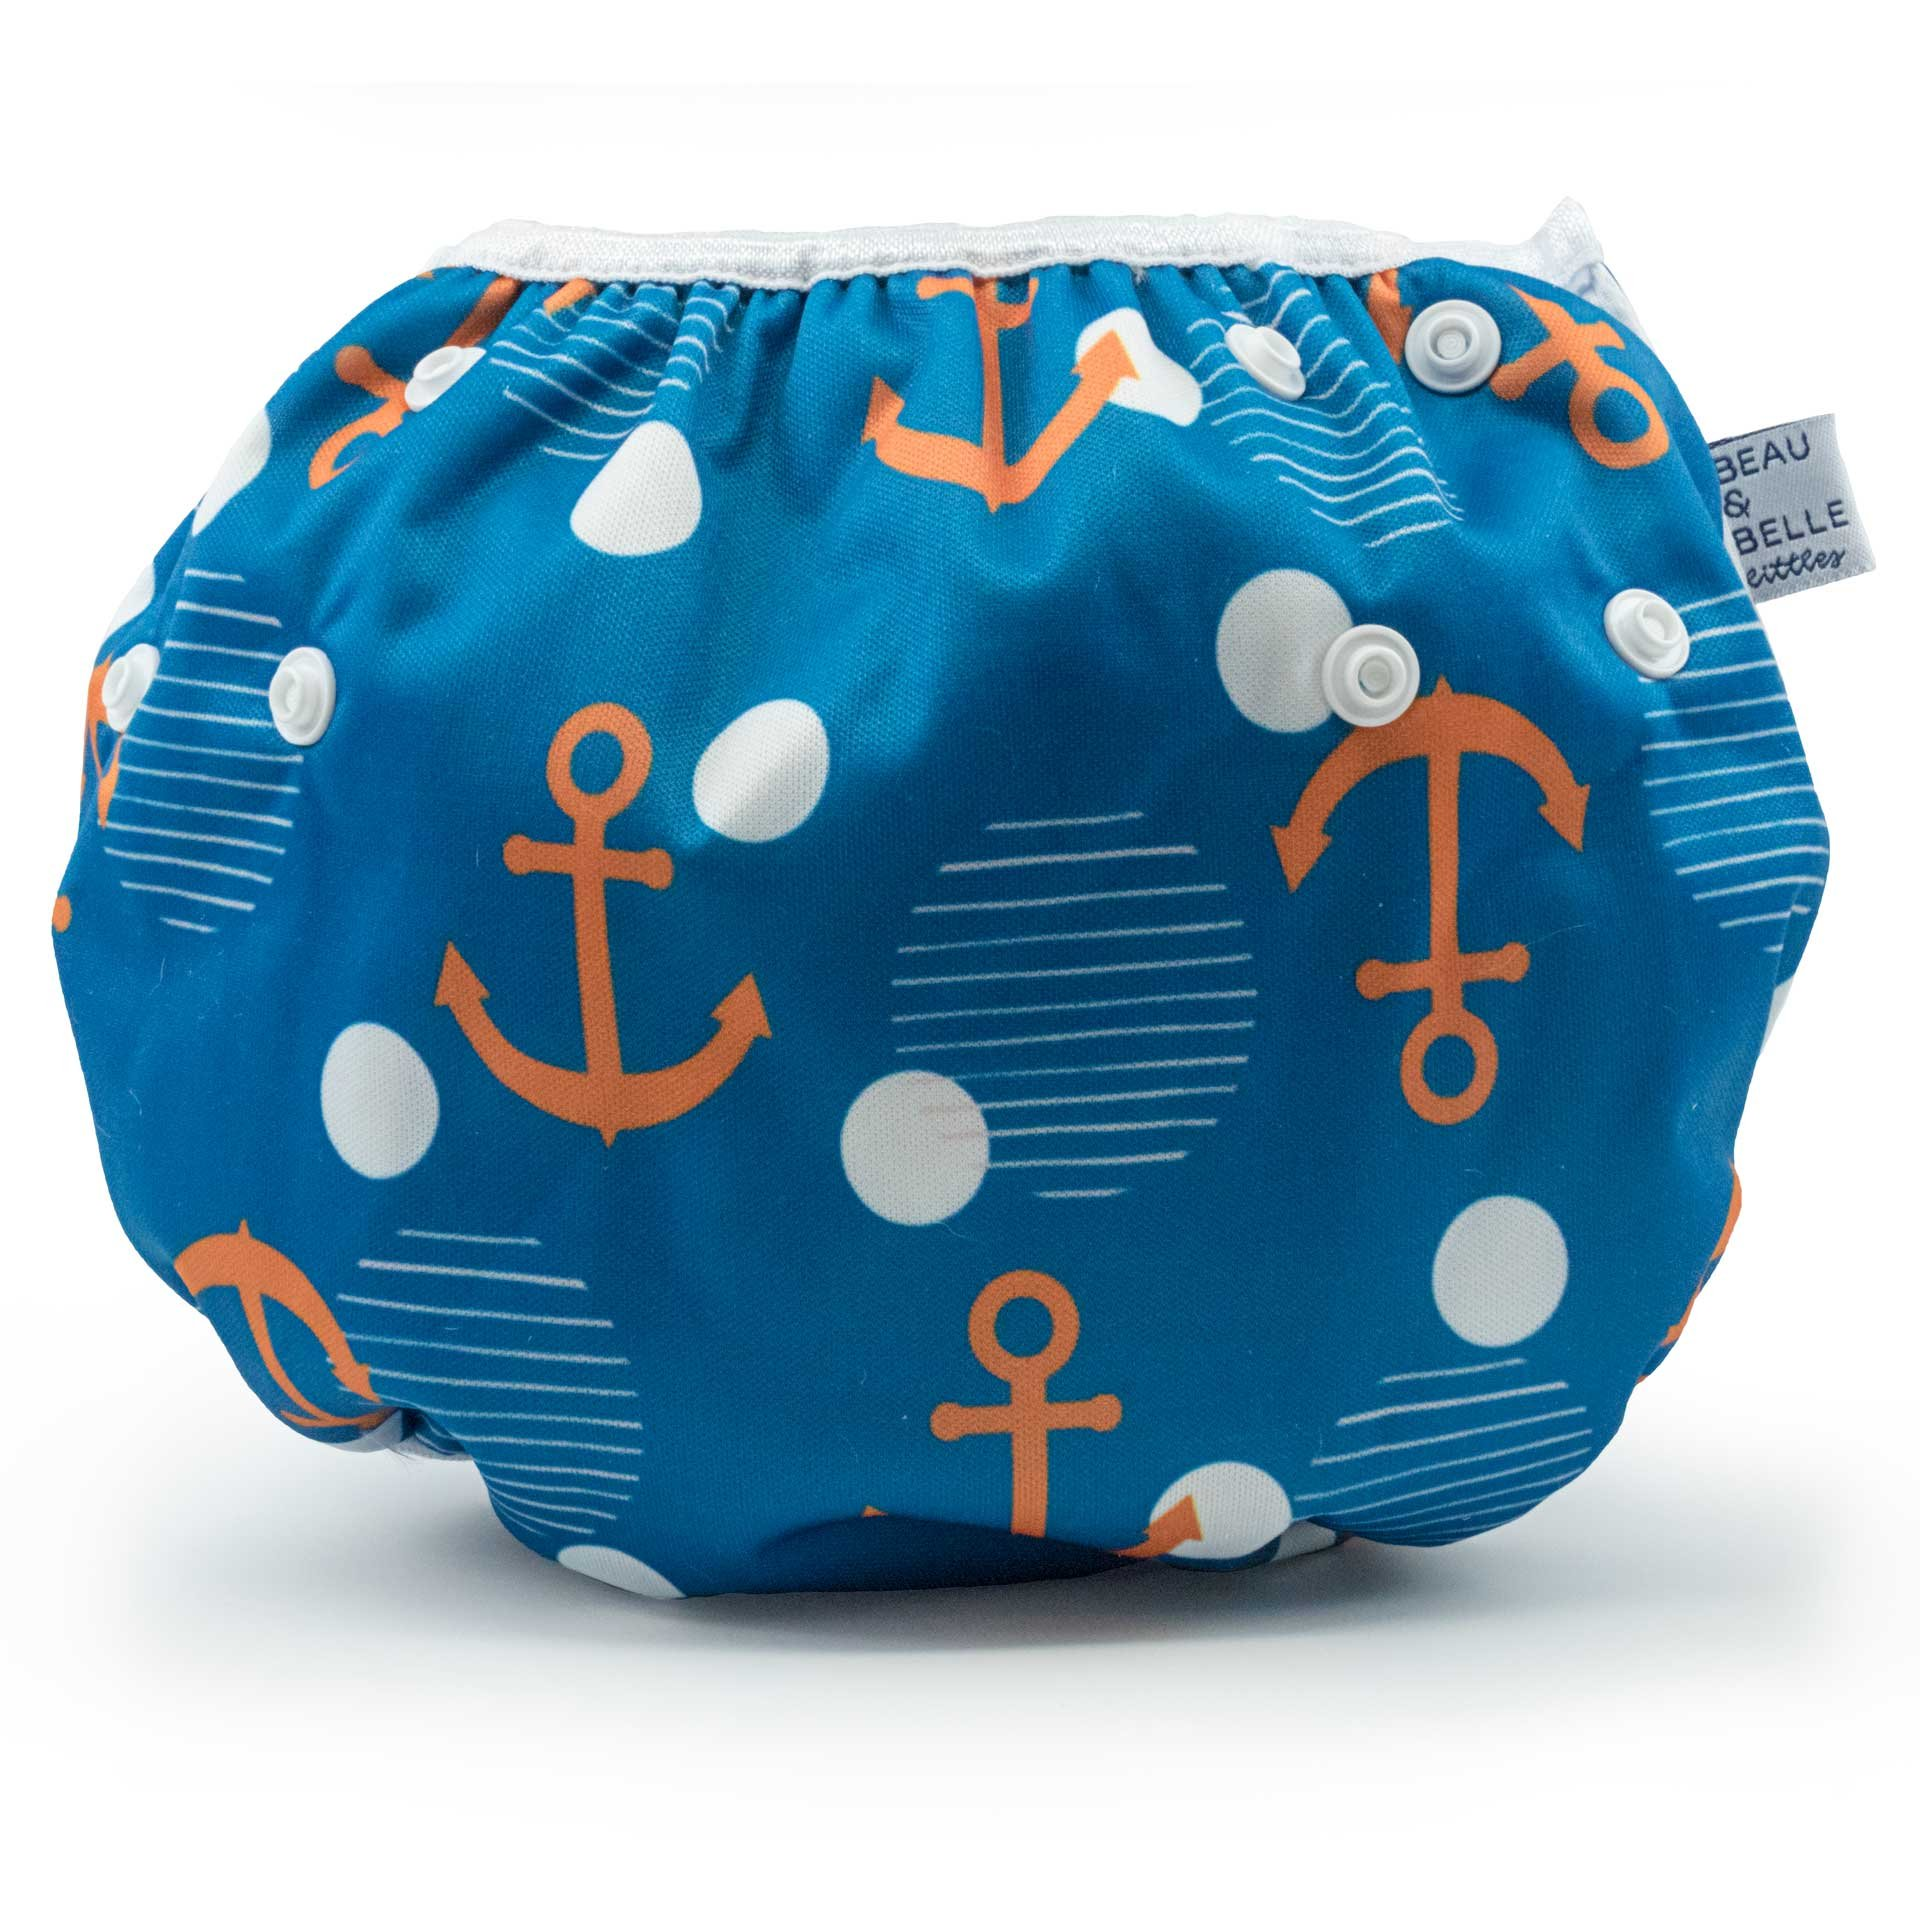 Large Nageuret Reusable Swim Diaper, Adjustable & Stylish Fits Diapers Sizes 4-7 (Approx. 20-55lbs) Ultra Premium Quality for Eco-Friendly & Swimming Lessons (Anchors) by Beau & Belle Littles